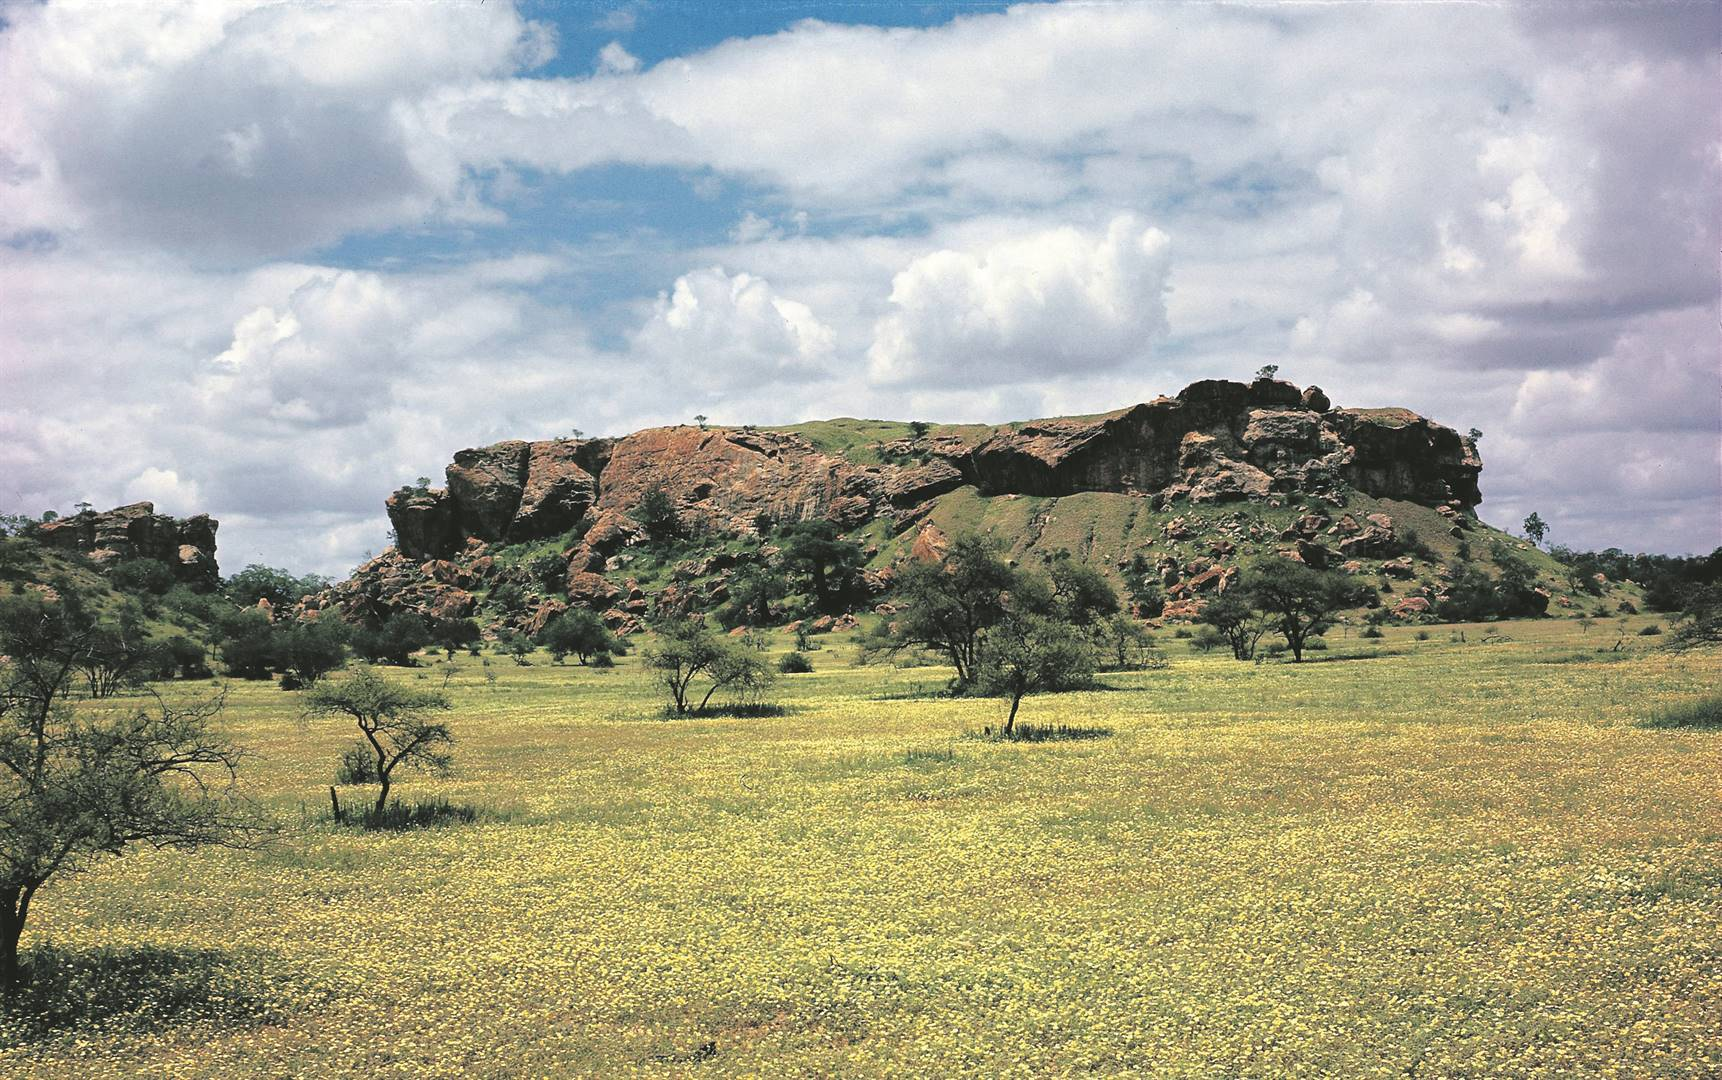 Mapungubwe Hill rises in the countryside.